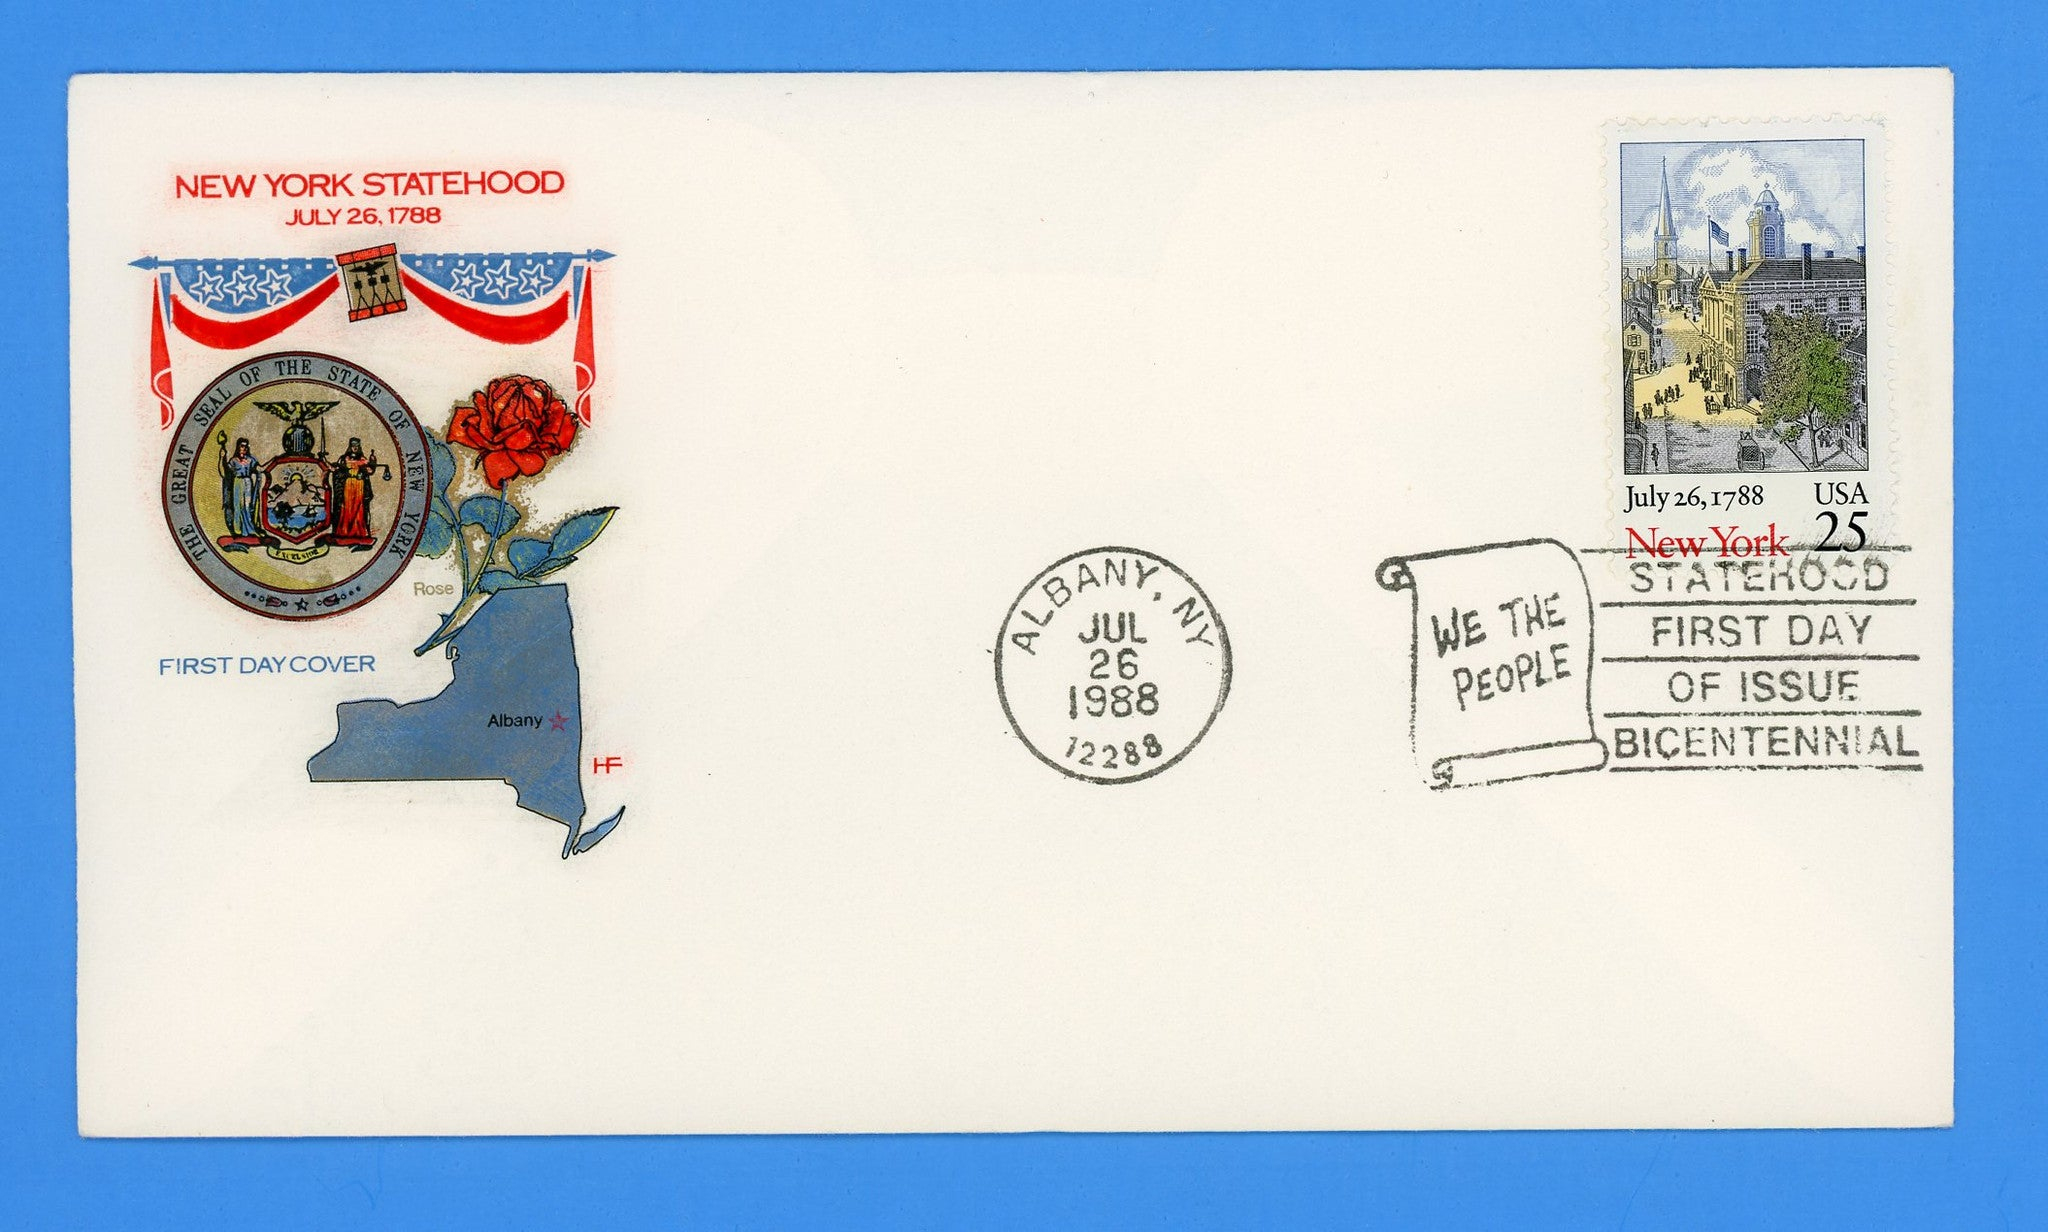 New York Statehood First Day Cover by House of Farnum